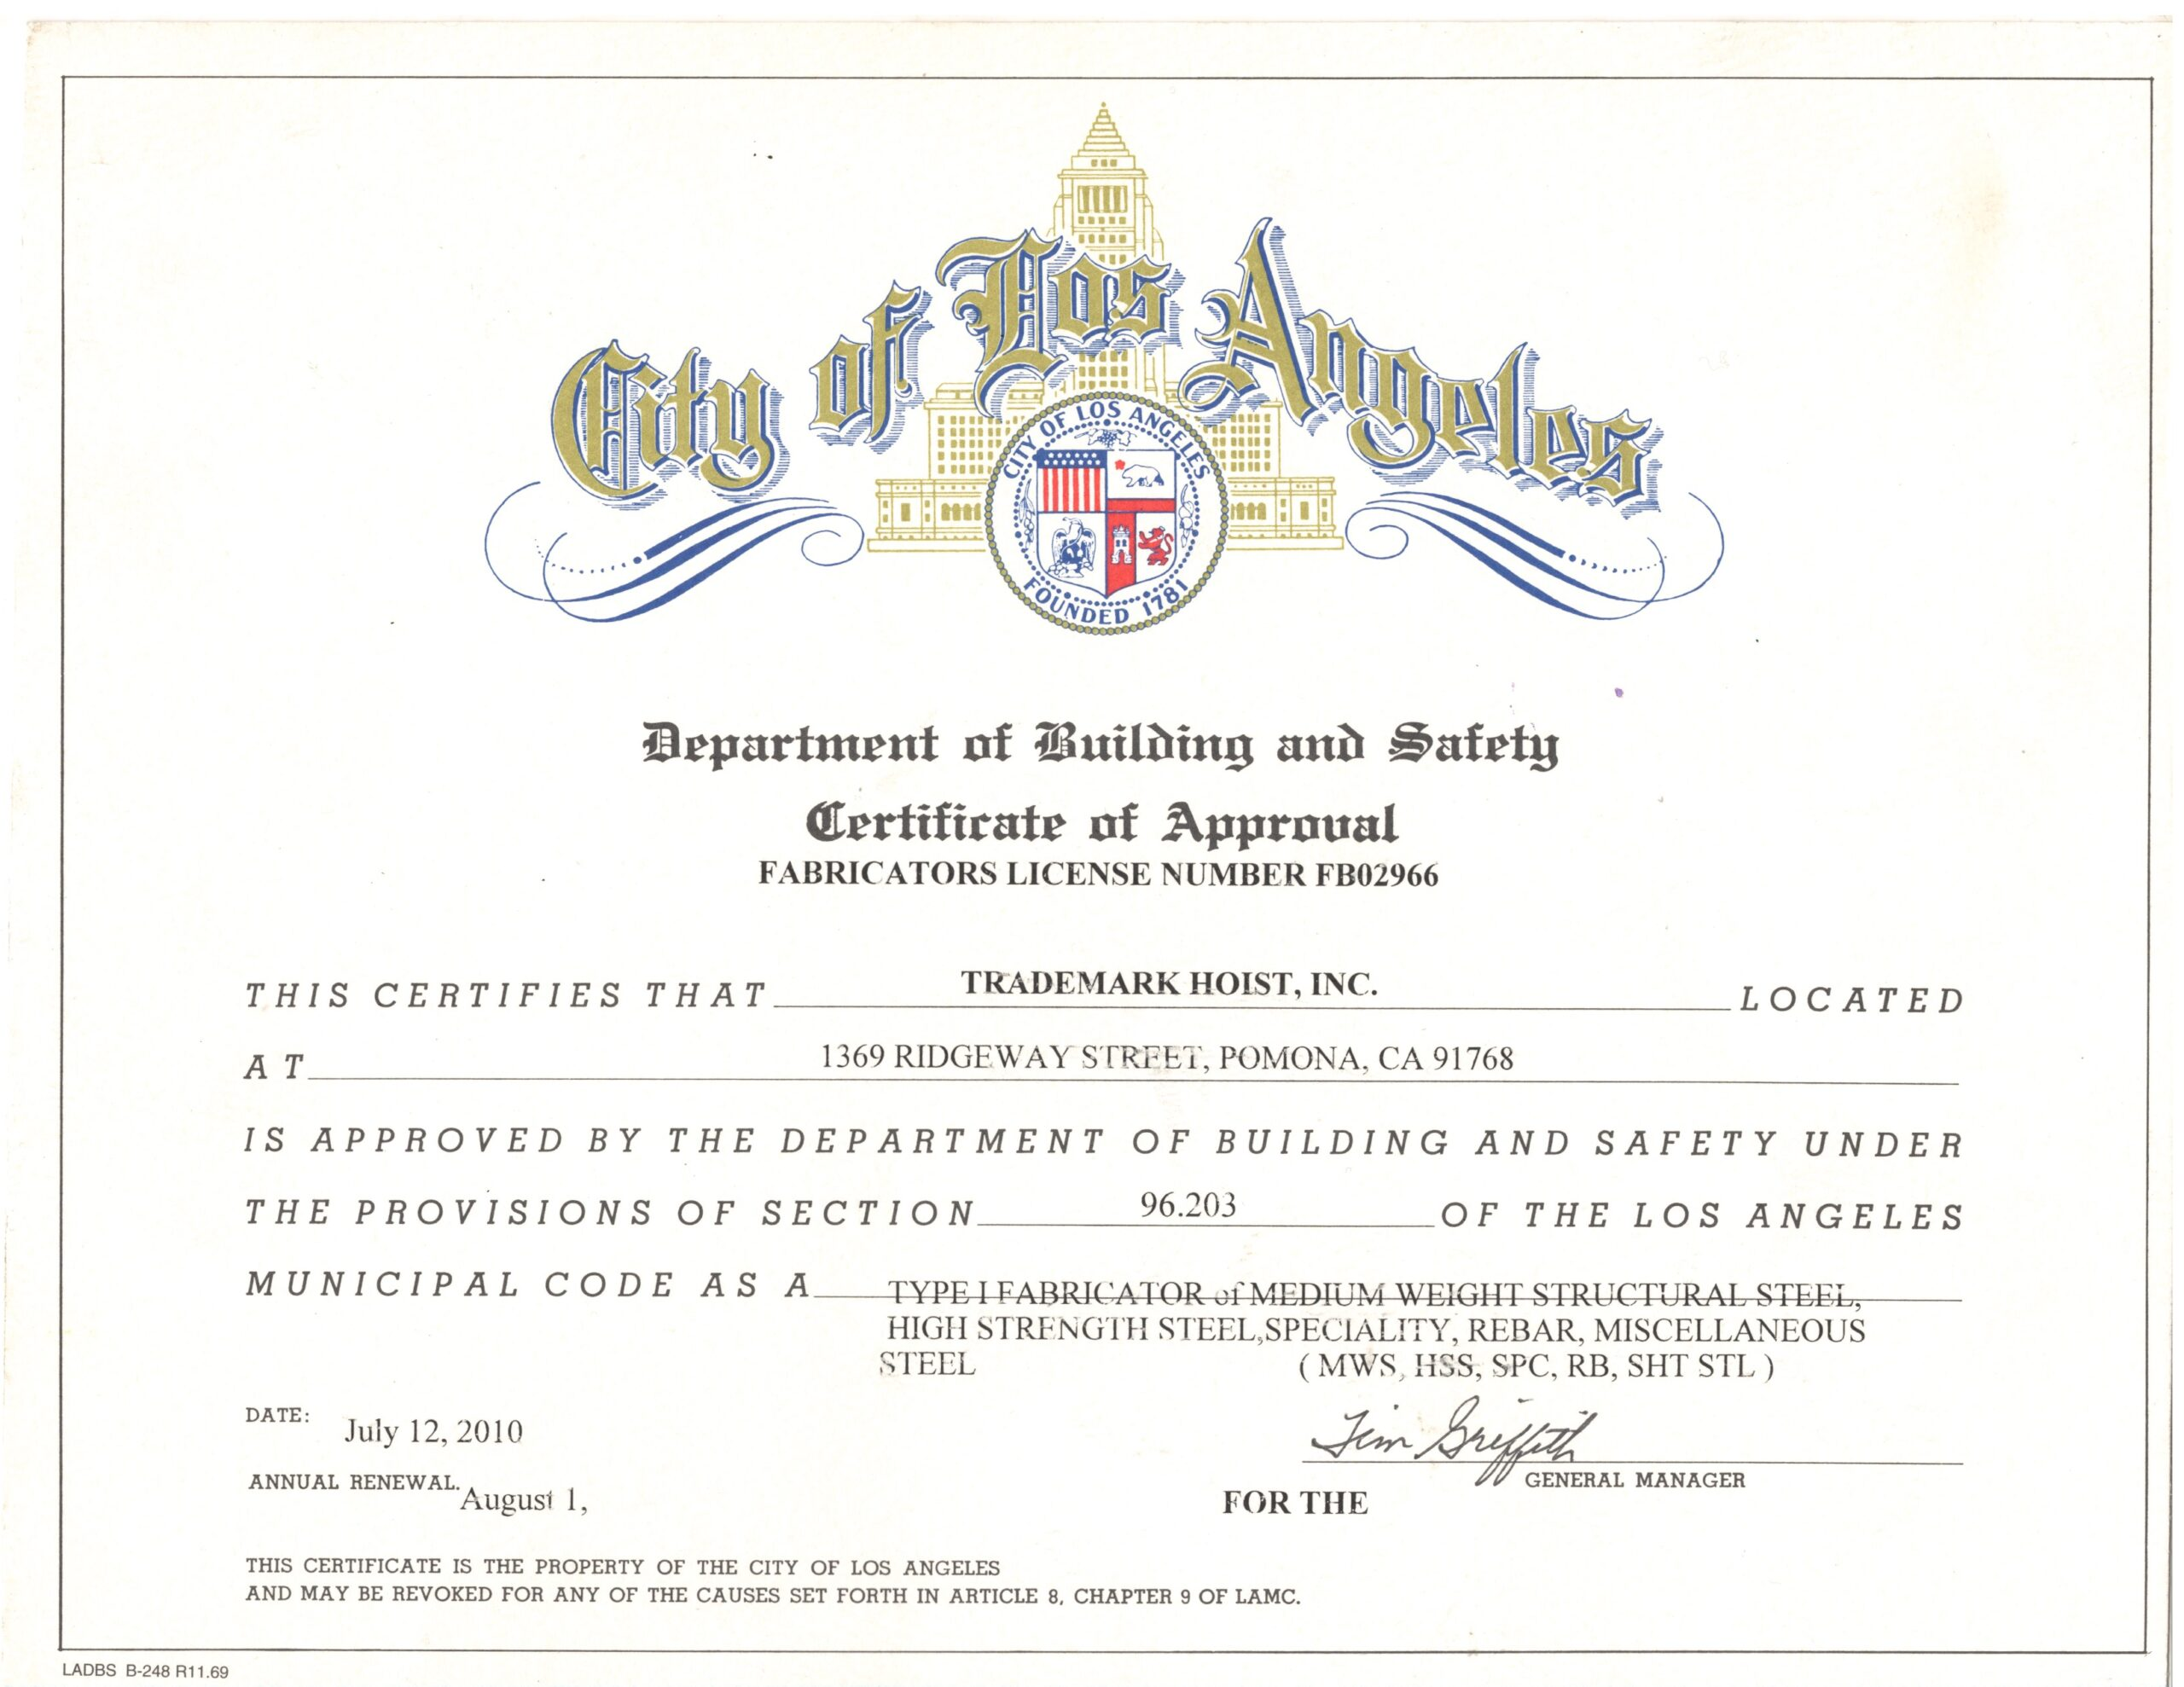 City of Los Angeles Fabricators License No. FB02966